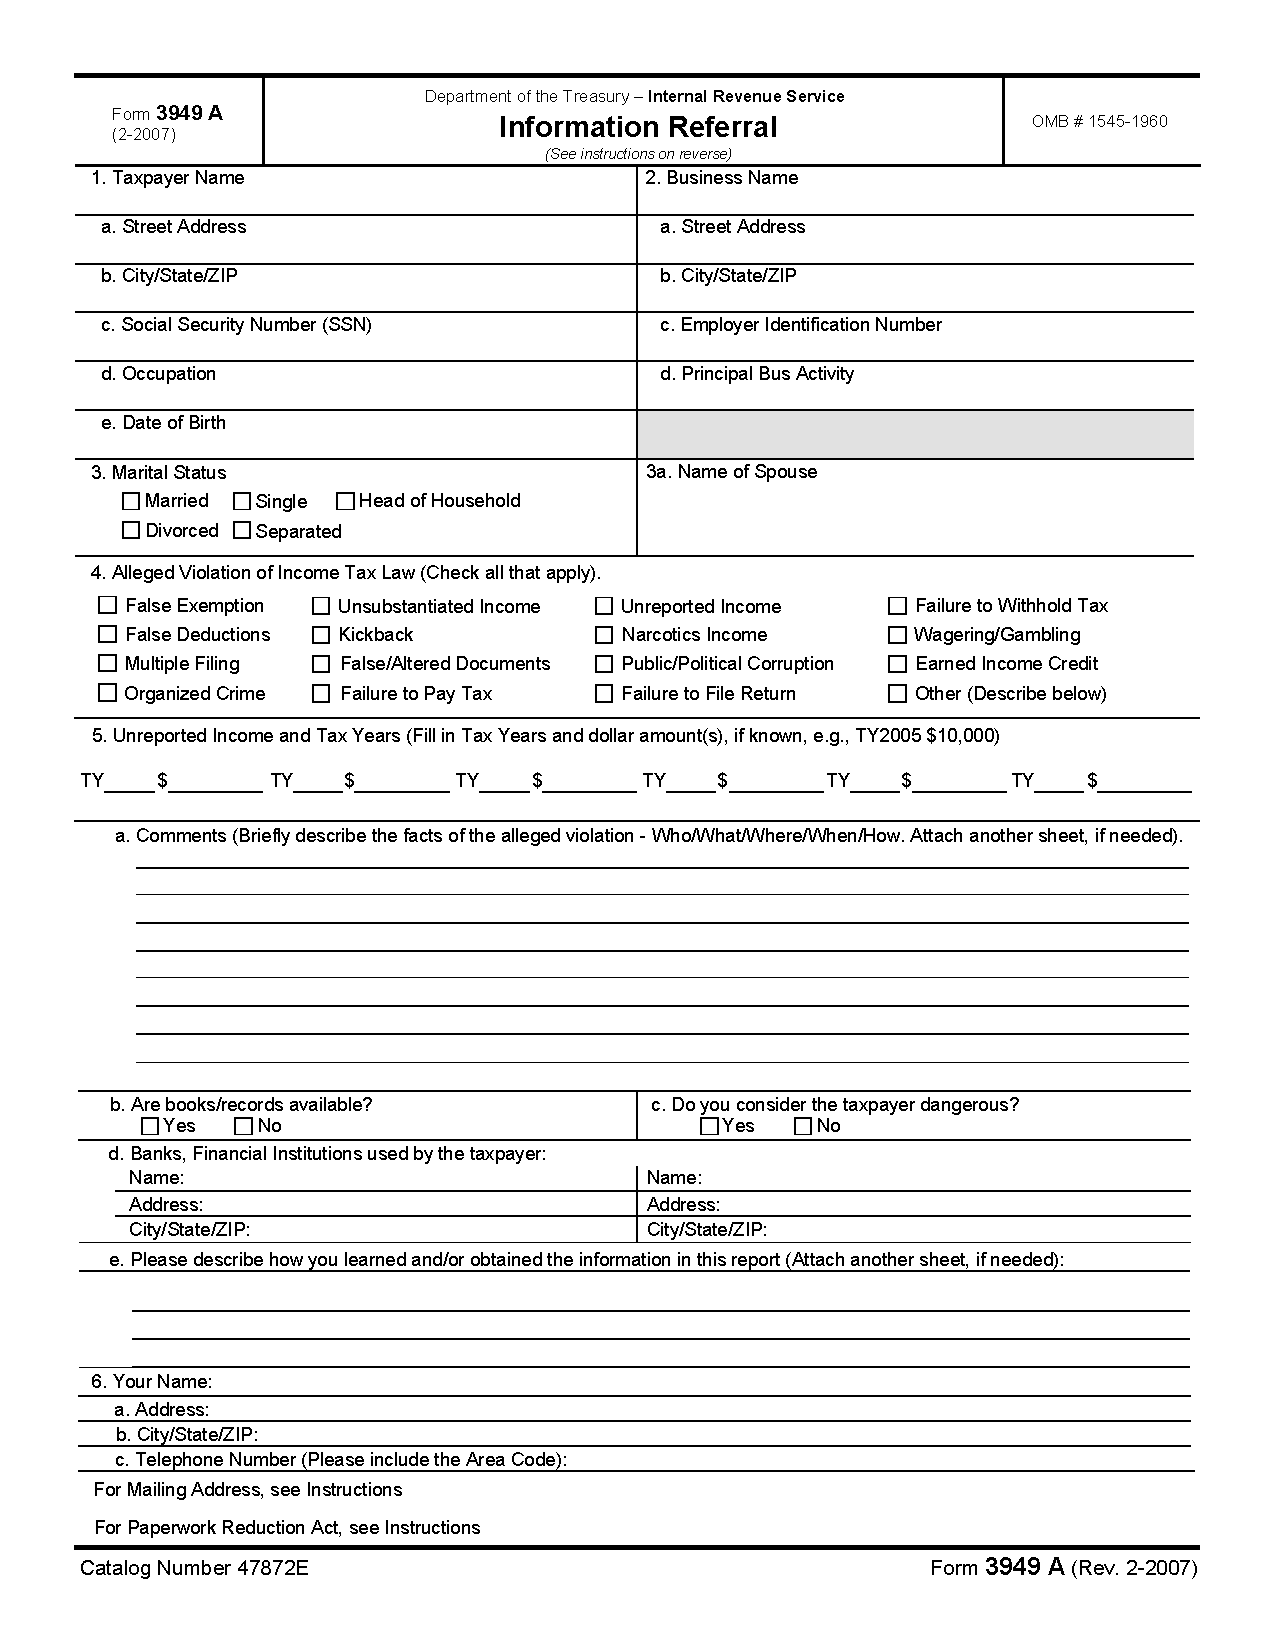 Form A Information Referral